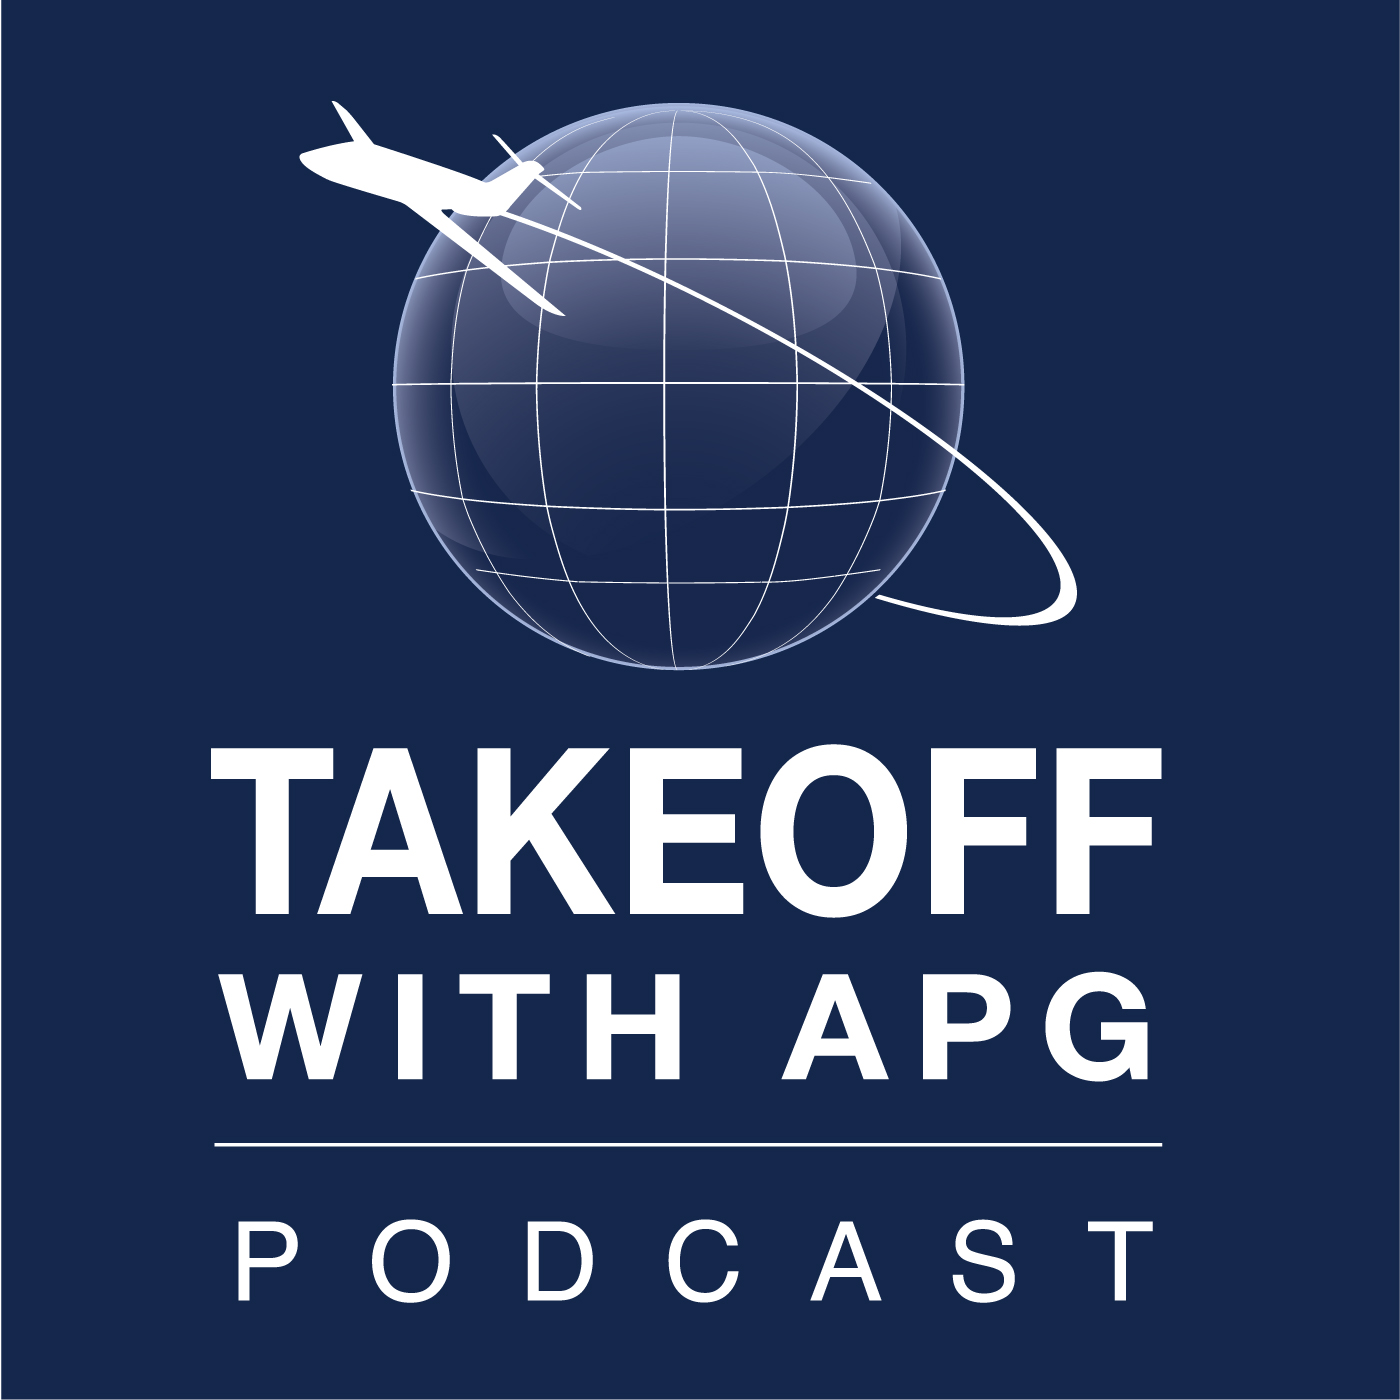 TAKEOFF With APG podcast show art